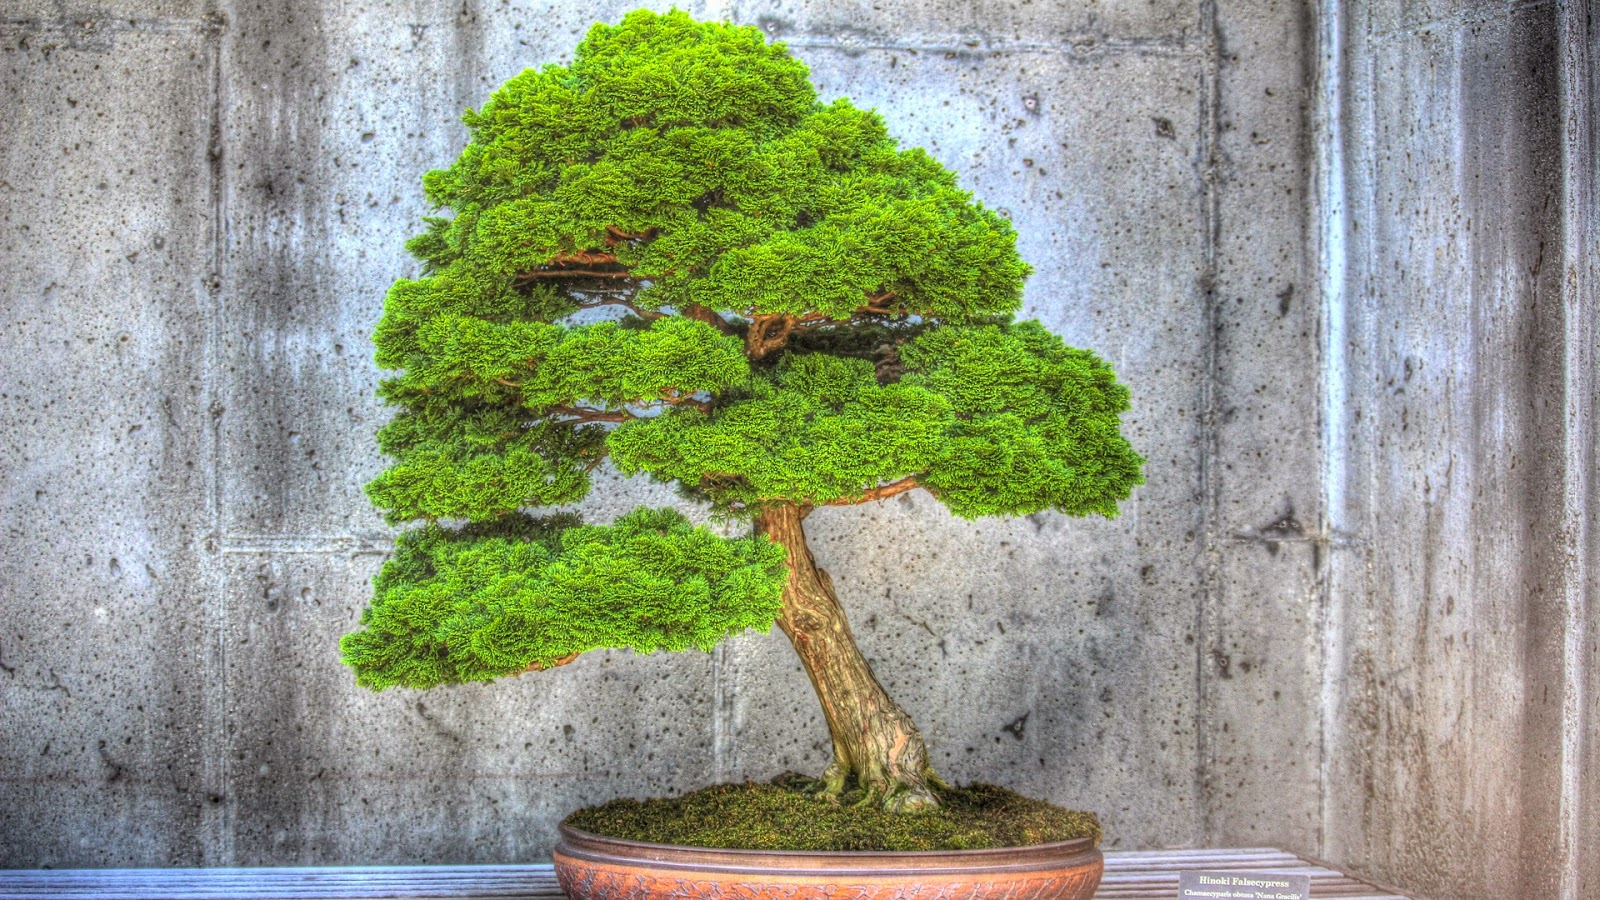 Bonsai Tree Garden North Carolina Arboretum